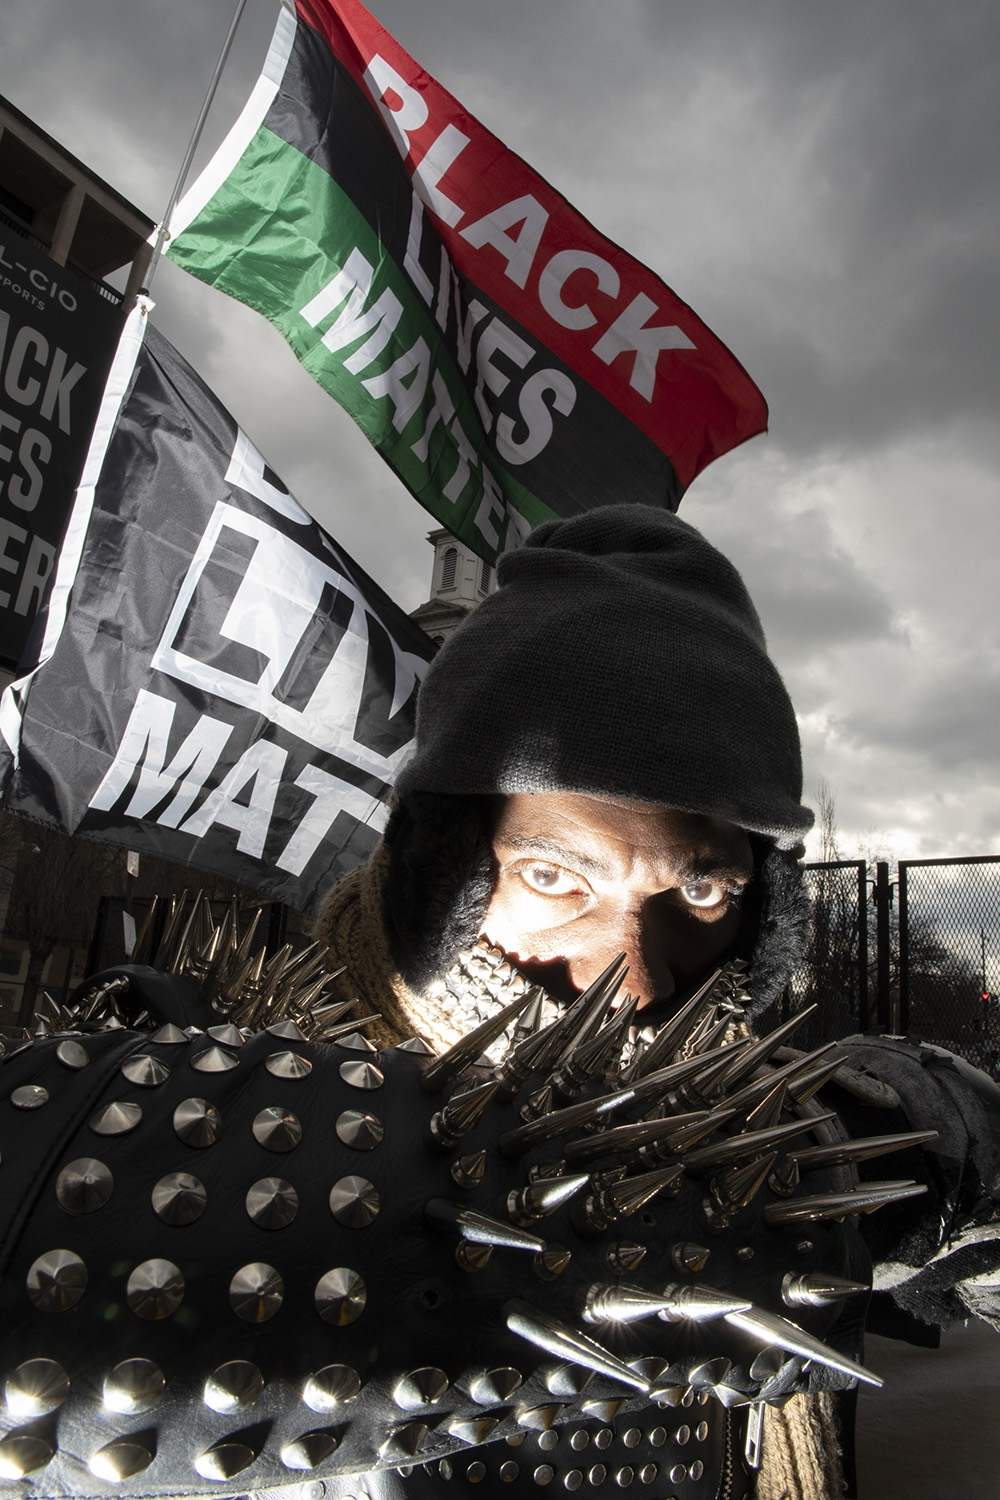 In a dramtic image, light hits the face of a man wearing a black winter hat and dark grey winter scarf. His arm, covered in silves spikes and studs, covers the lower half of his face. Behind him fly a red, black and green Black Lives Matter flag and a black and white Black Lives matter sign.